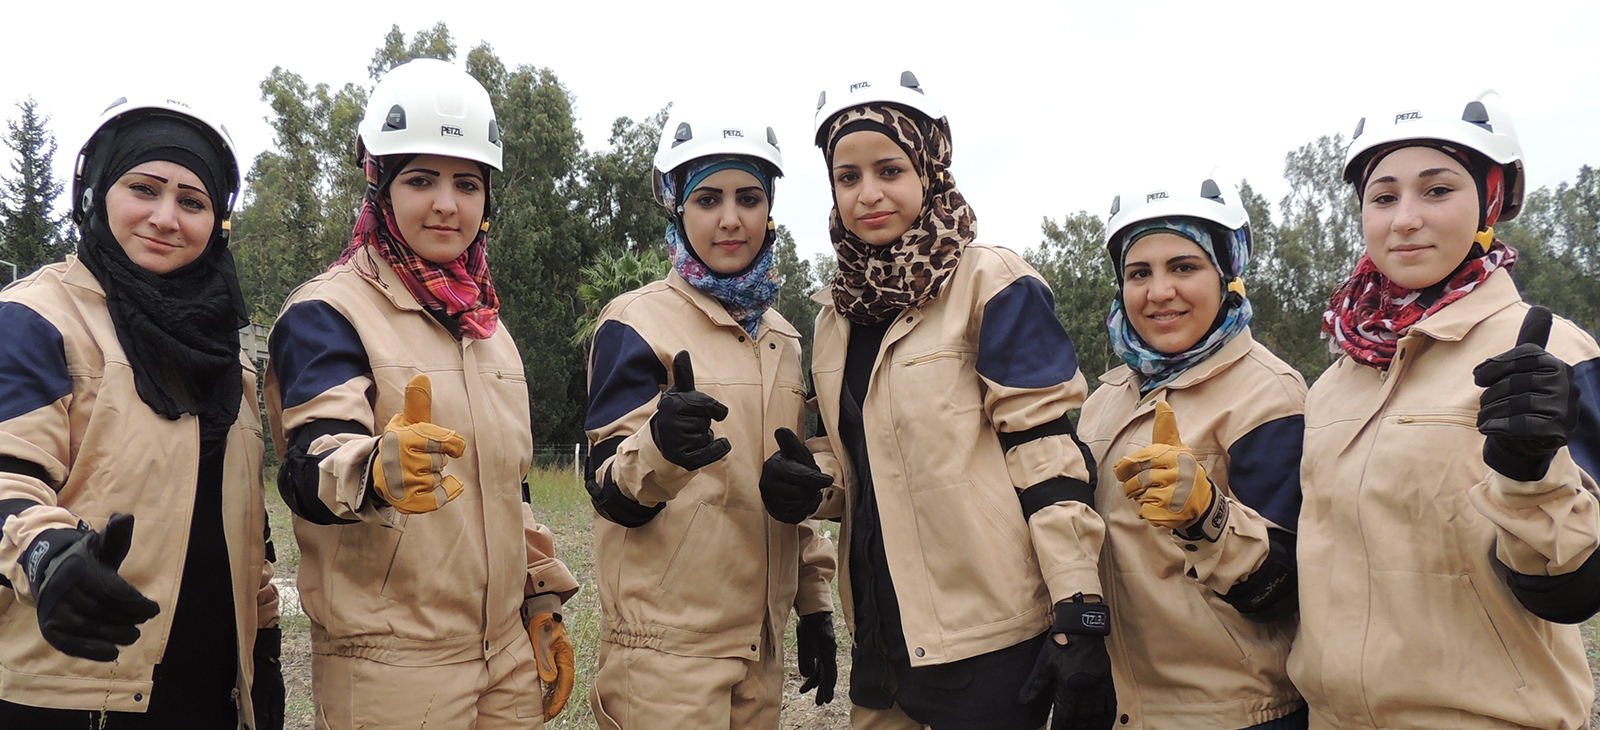 The women of the White Helmets , also known as the Syrian Civil Defence.